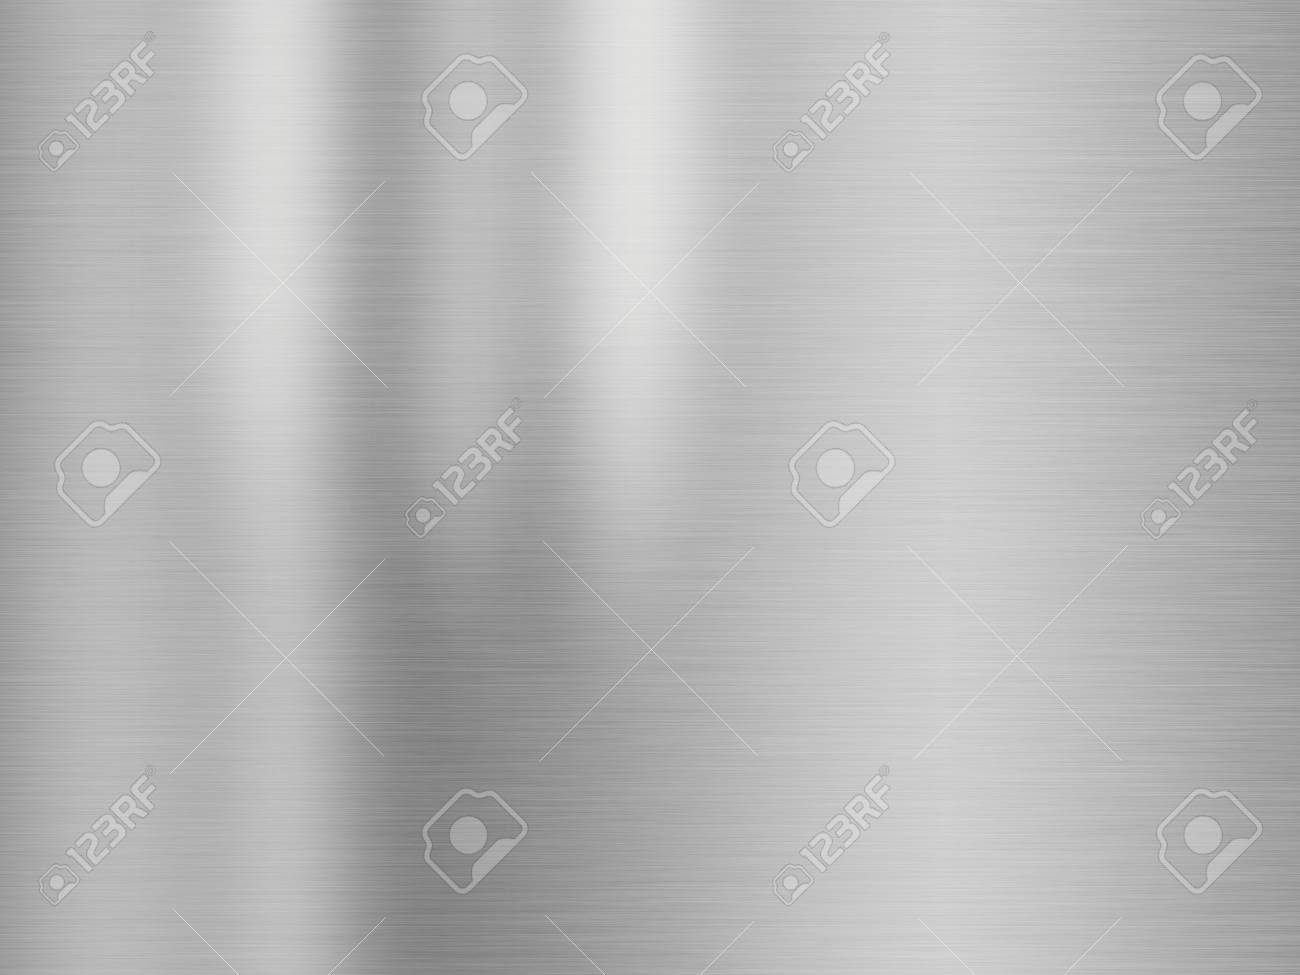 Stainless steel texture or metal texture background Banque d'images - 75076717